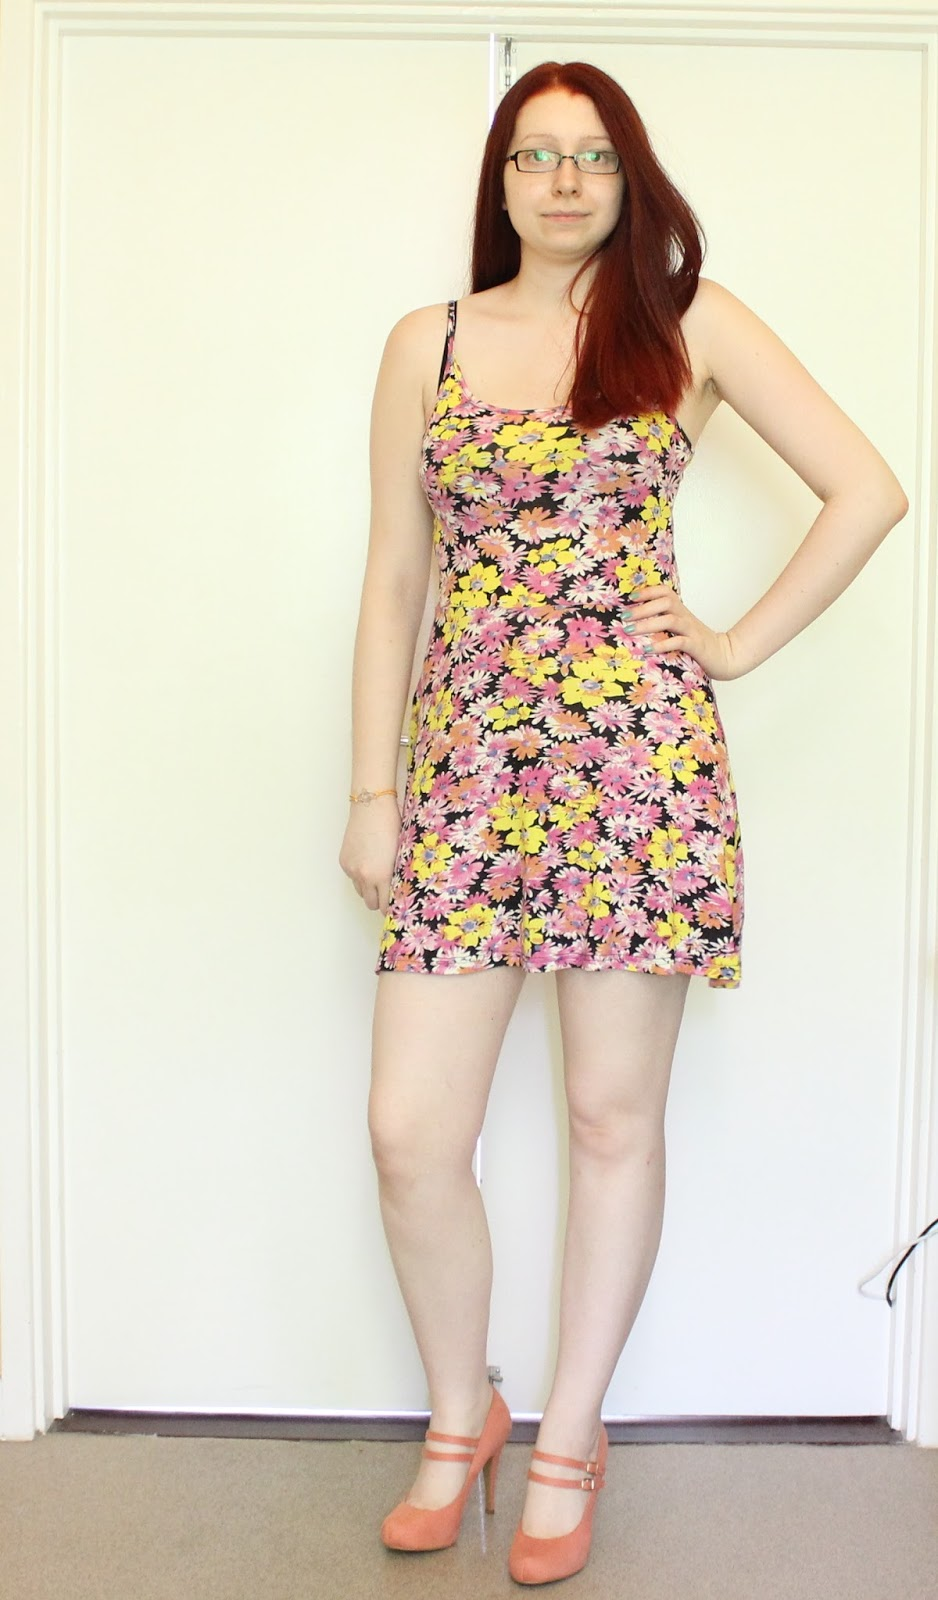 Outfit: Floral Dress